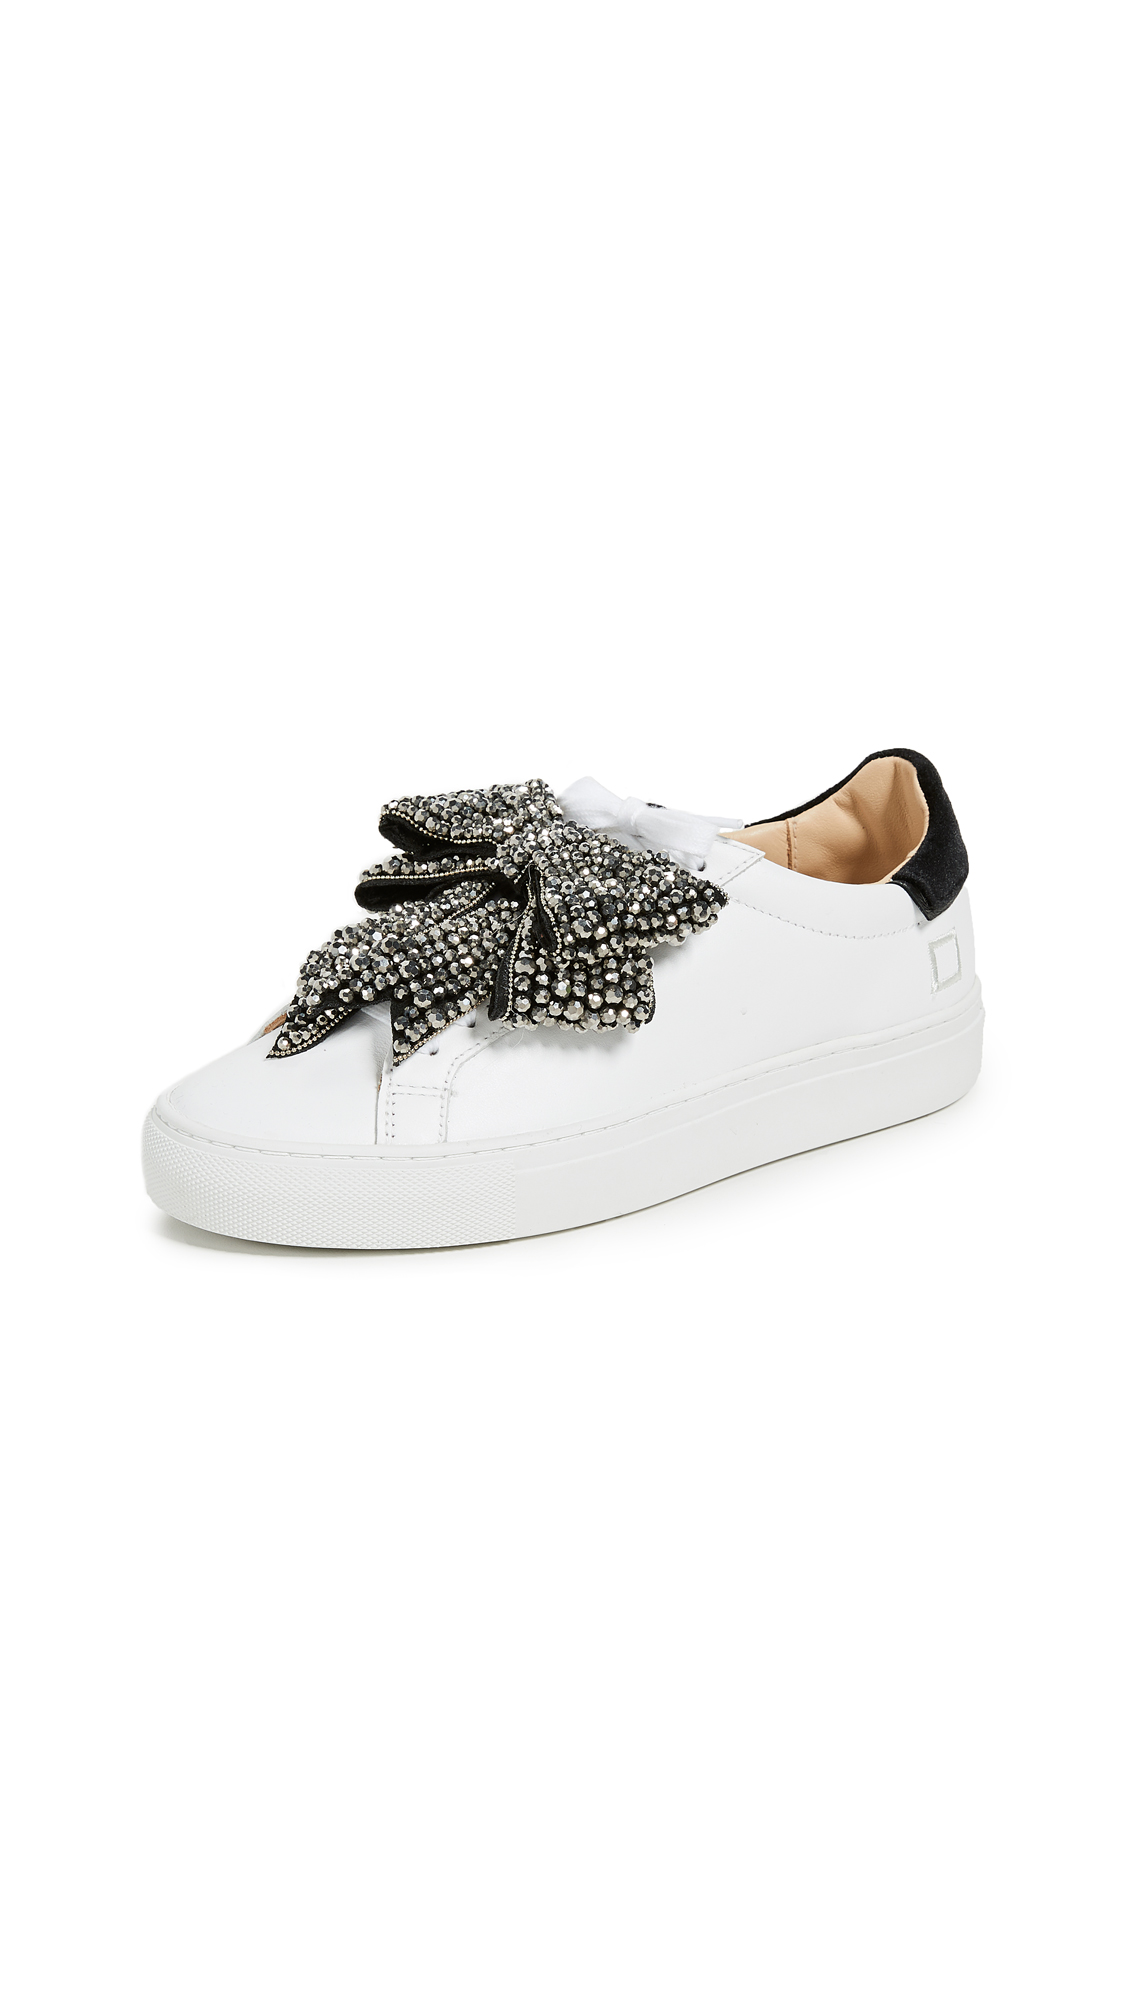 D.A.T.E. Newman Bow Strass Sneakers - White